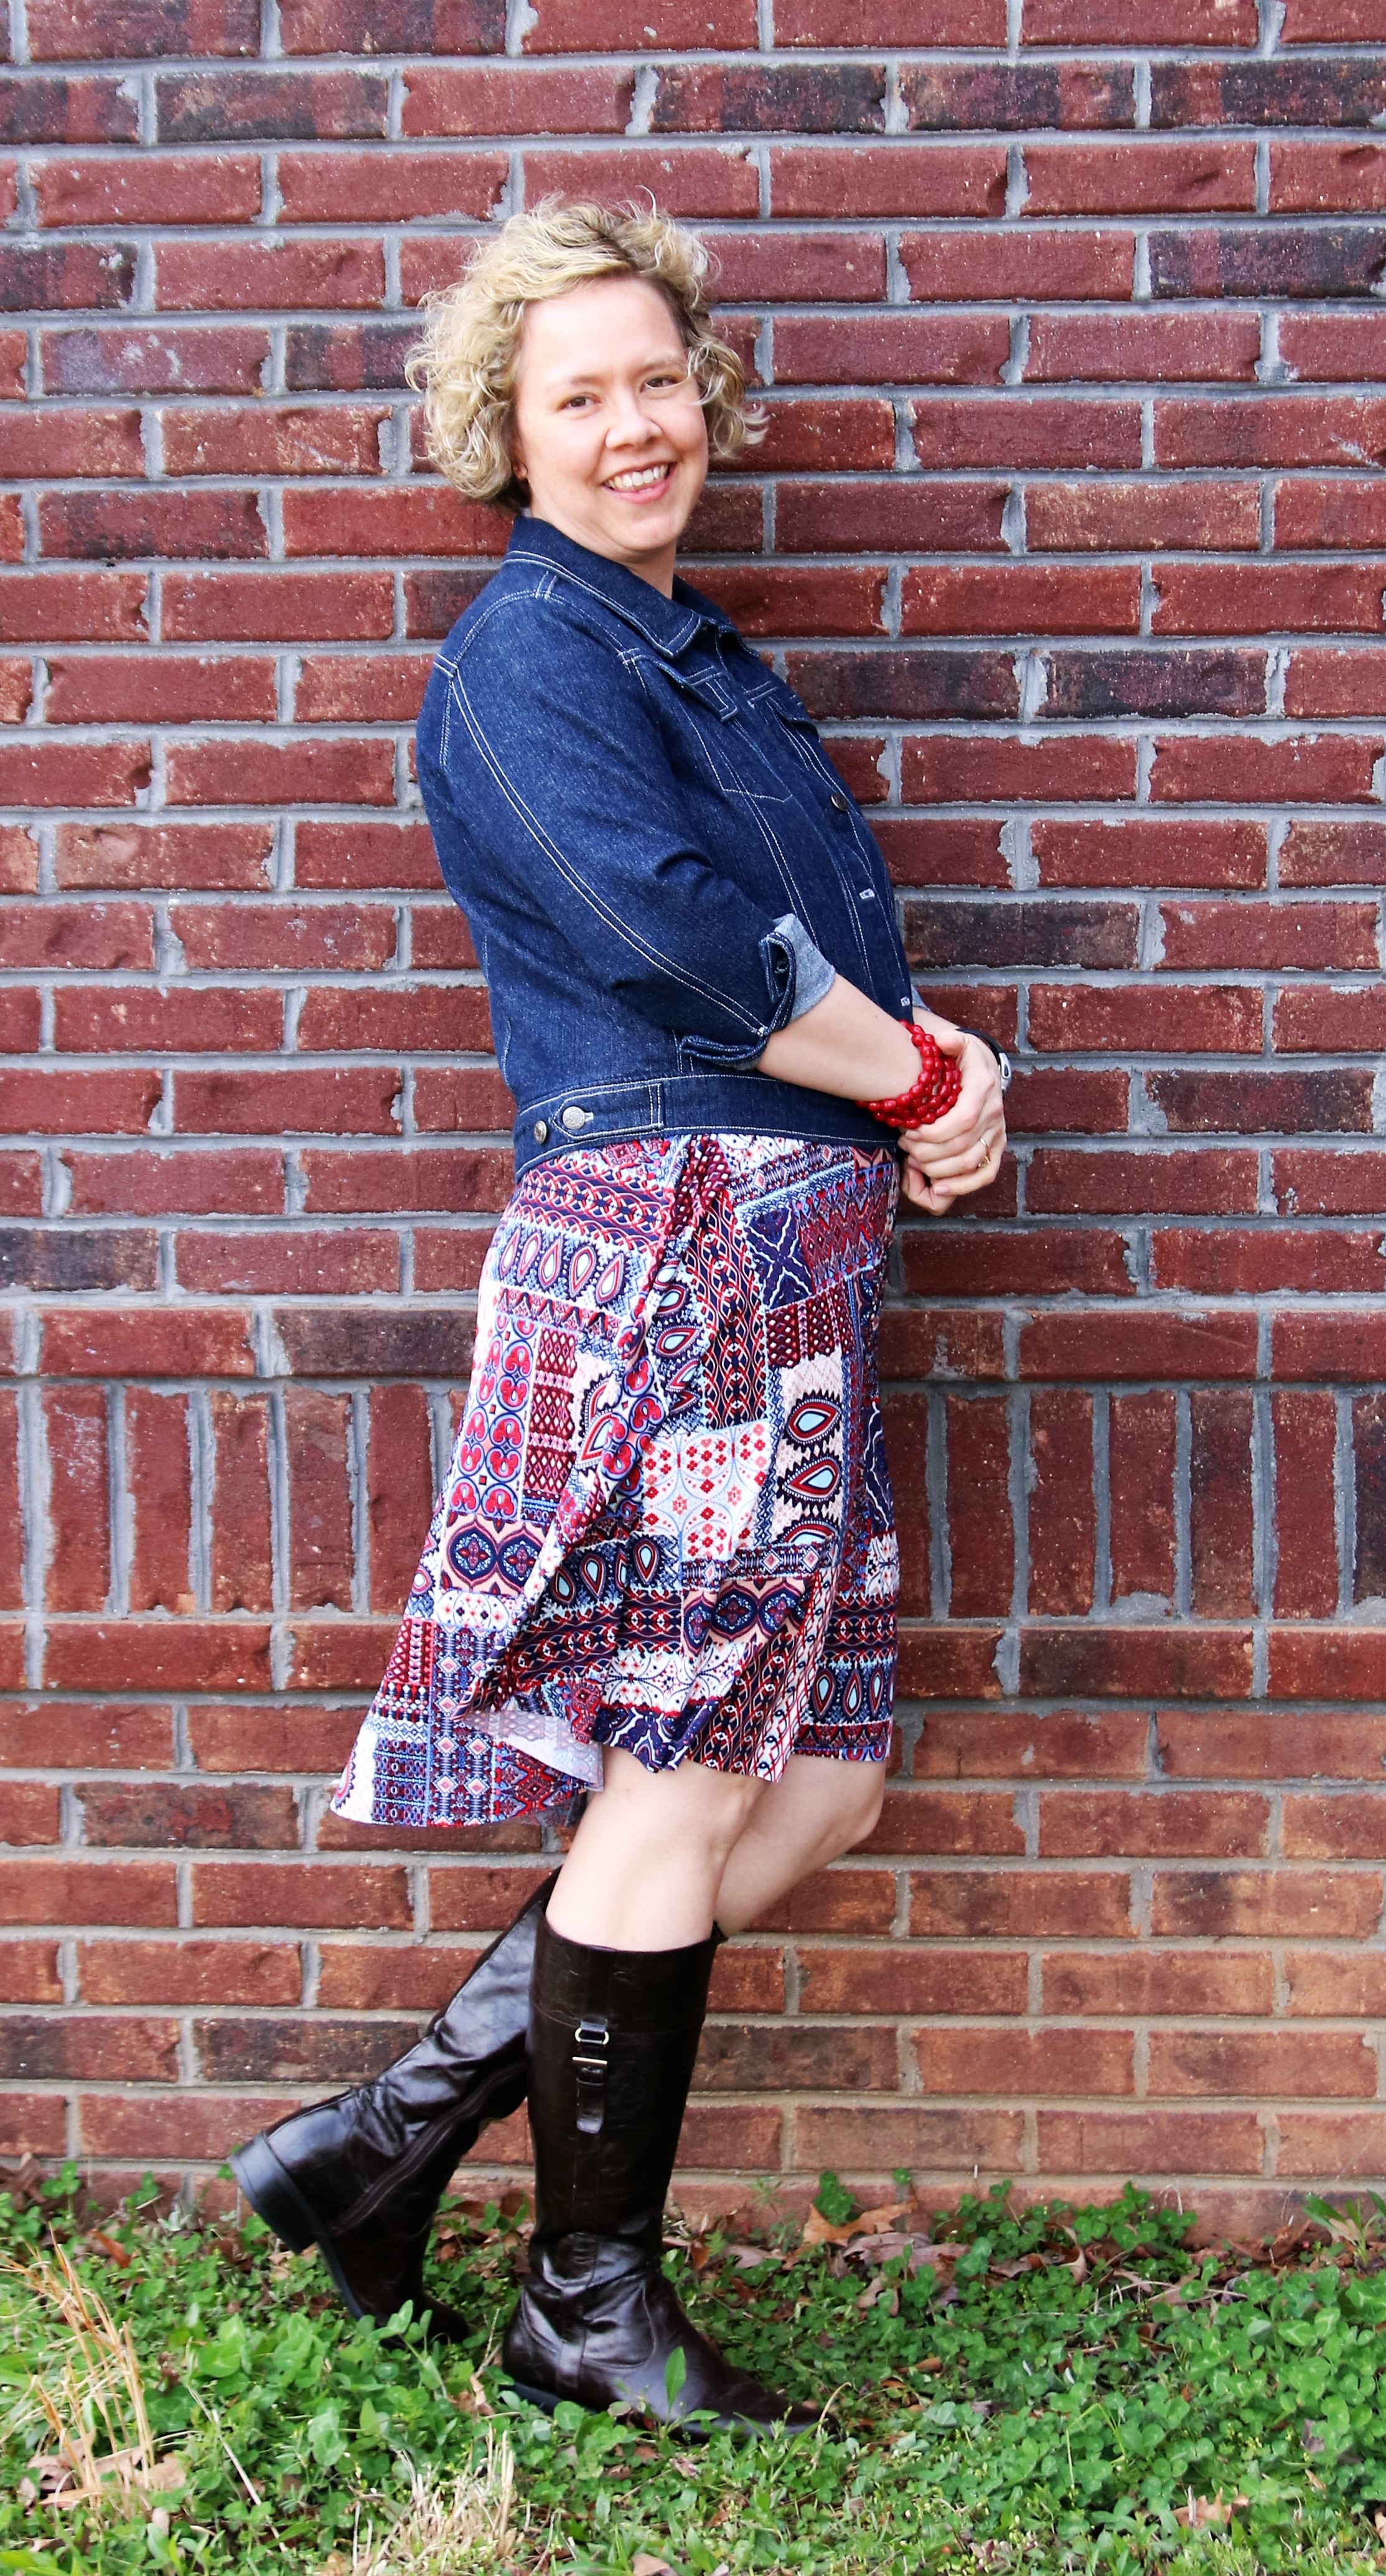 To say I was thrilled when I got an email from Alina asking if I would test this pattern would be an understatement!  She hinted at a jean jacket pattern on the horizon while working on the Panama Tee, and several of us found ourselves giddy with excitement!  As with her previous patterns, the  Hampton Jean Jacket  does not disappoint.